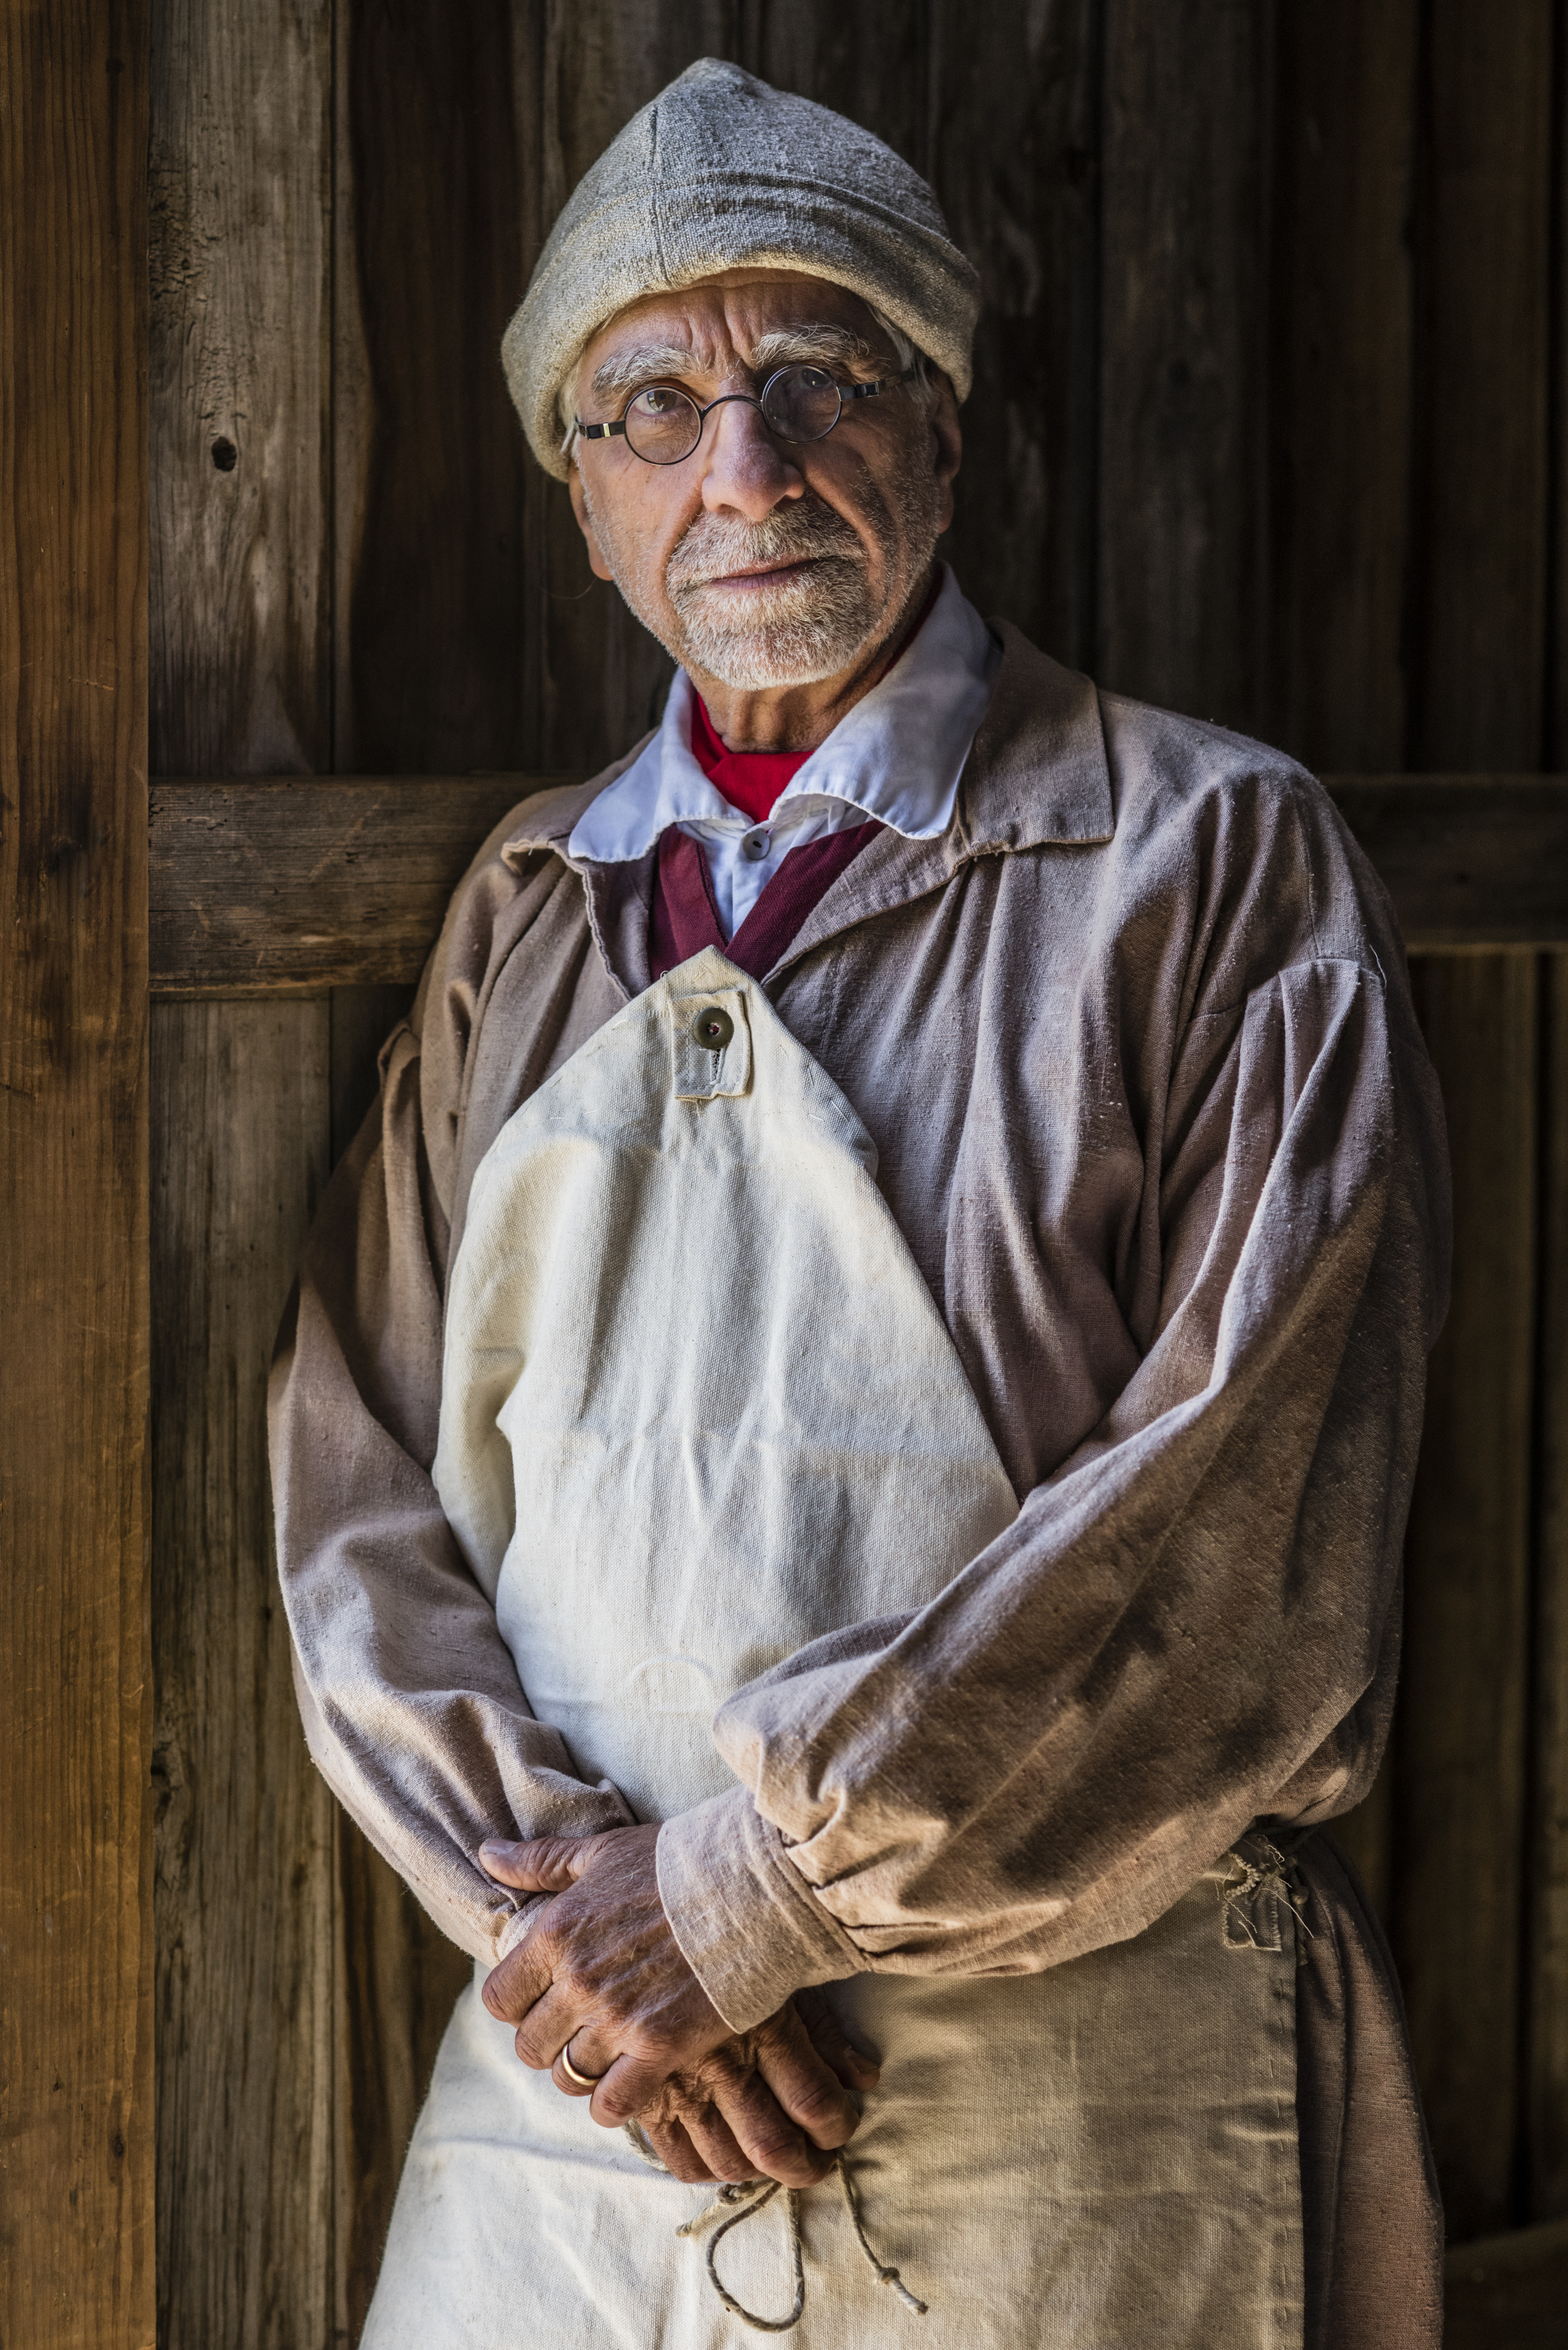 Mike Welch portrays Amos Pearson, a carpenter and Revolutionary War soldier.